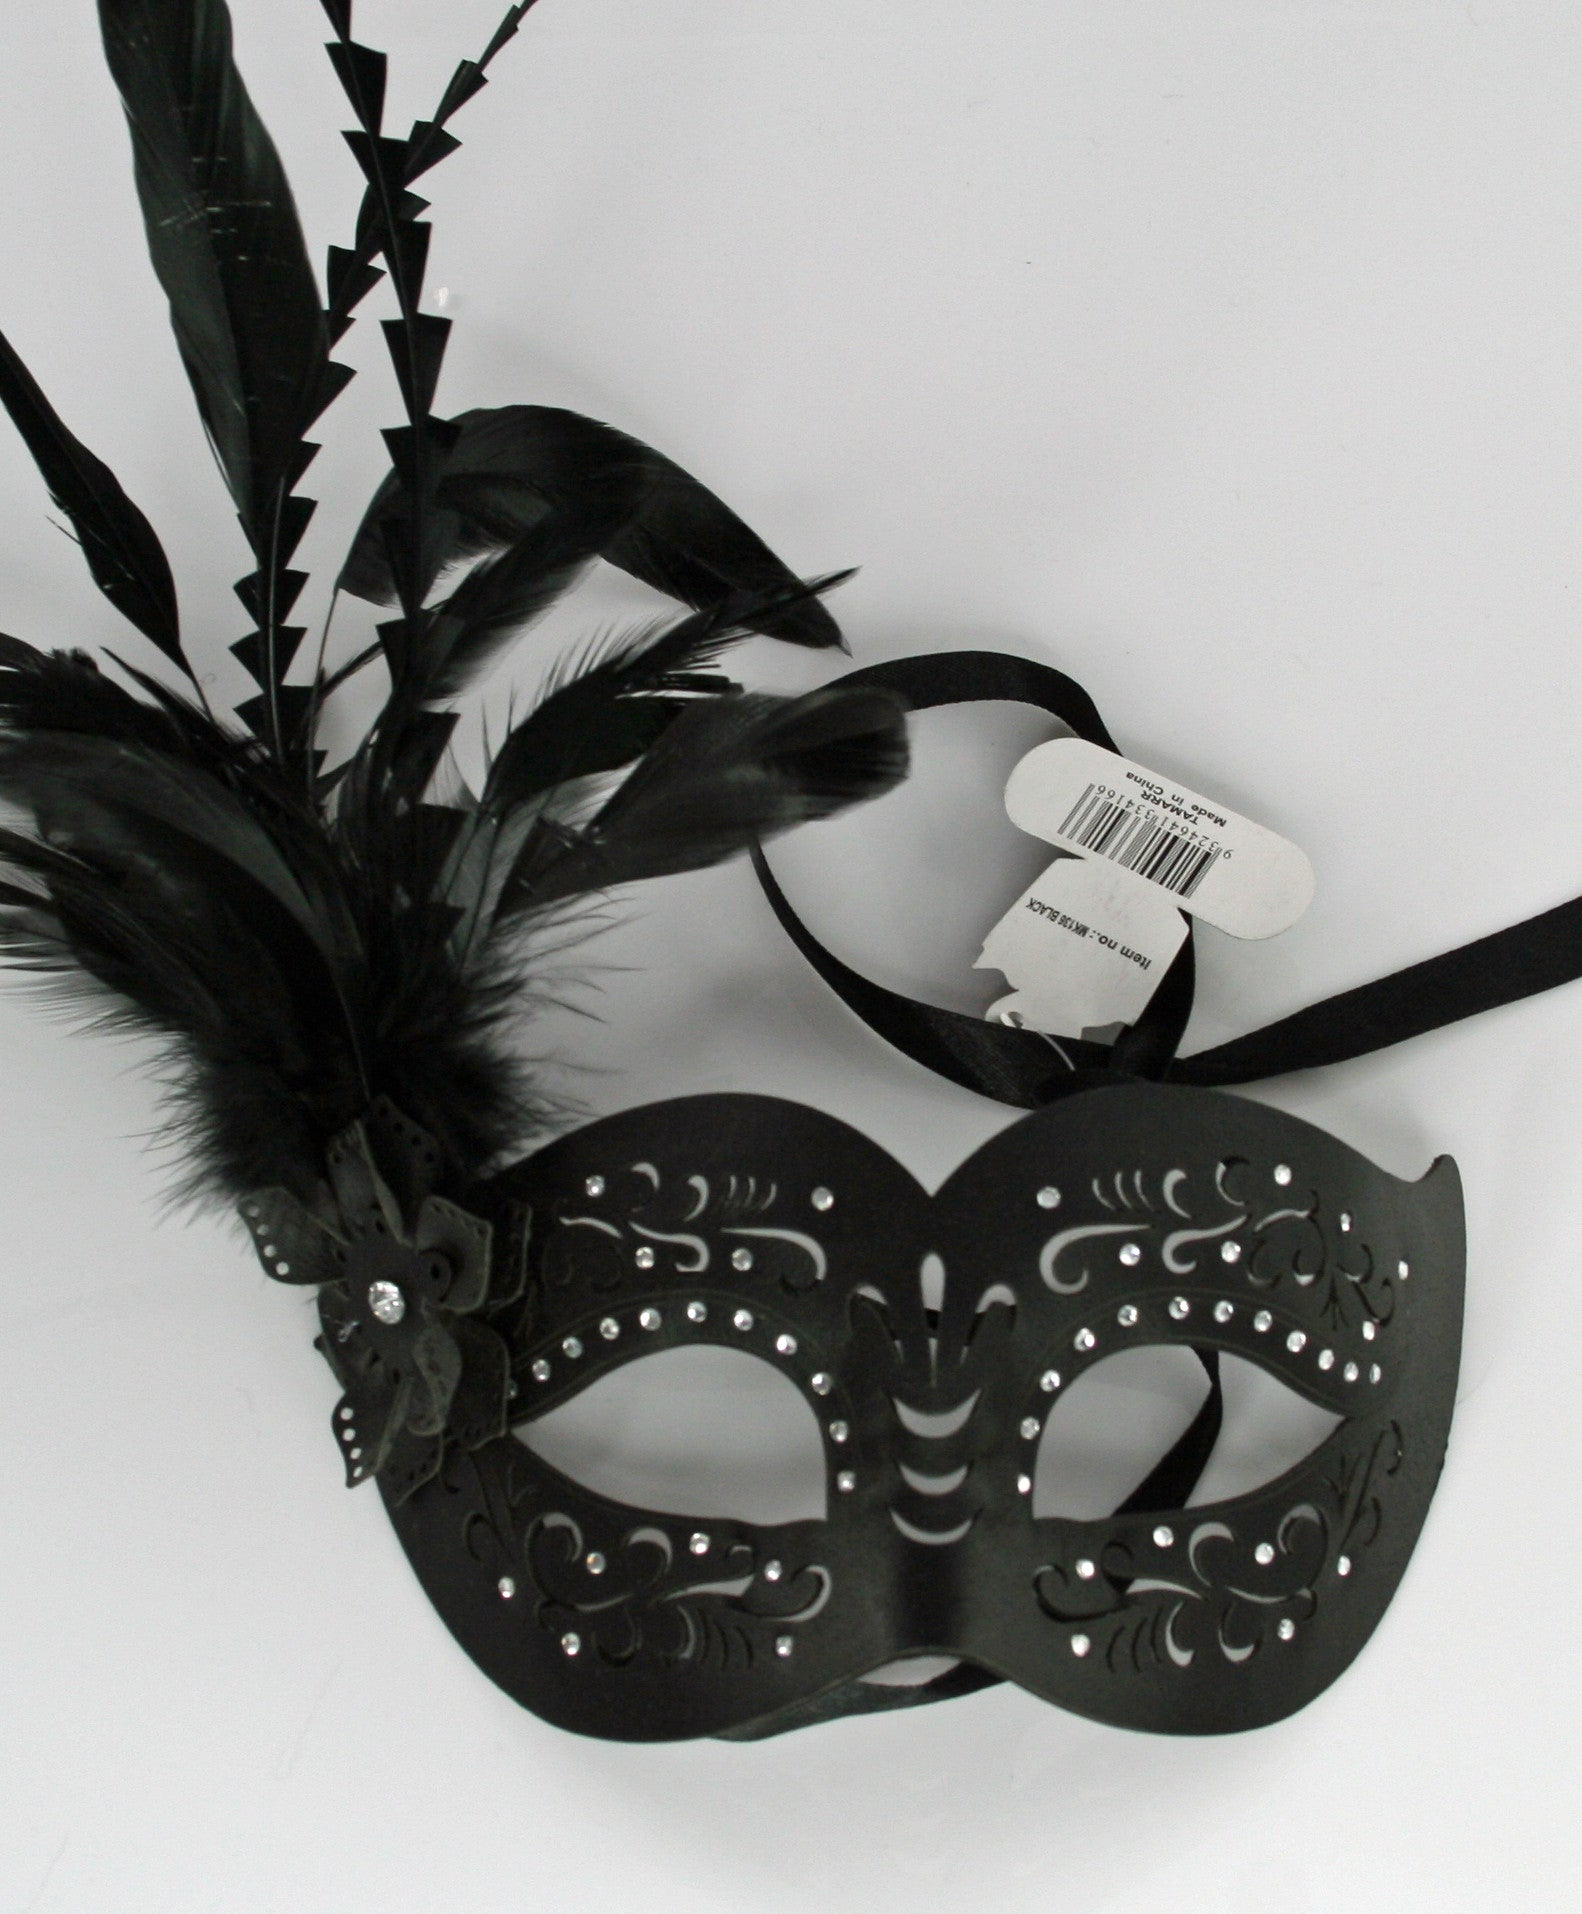 MK136 - Black Leatherette Mask with Feathers -  CLEARANCE HALF PRICE OFF ORIGINAL PRICE BELOW